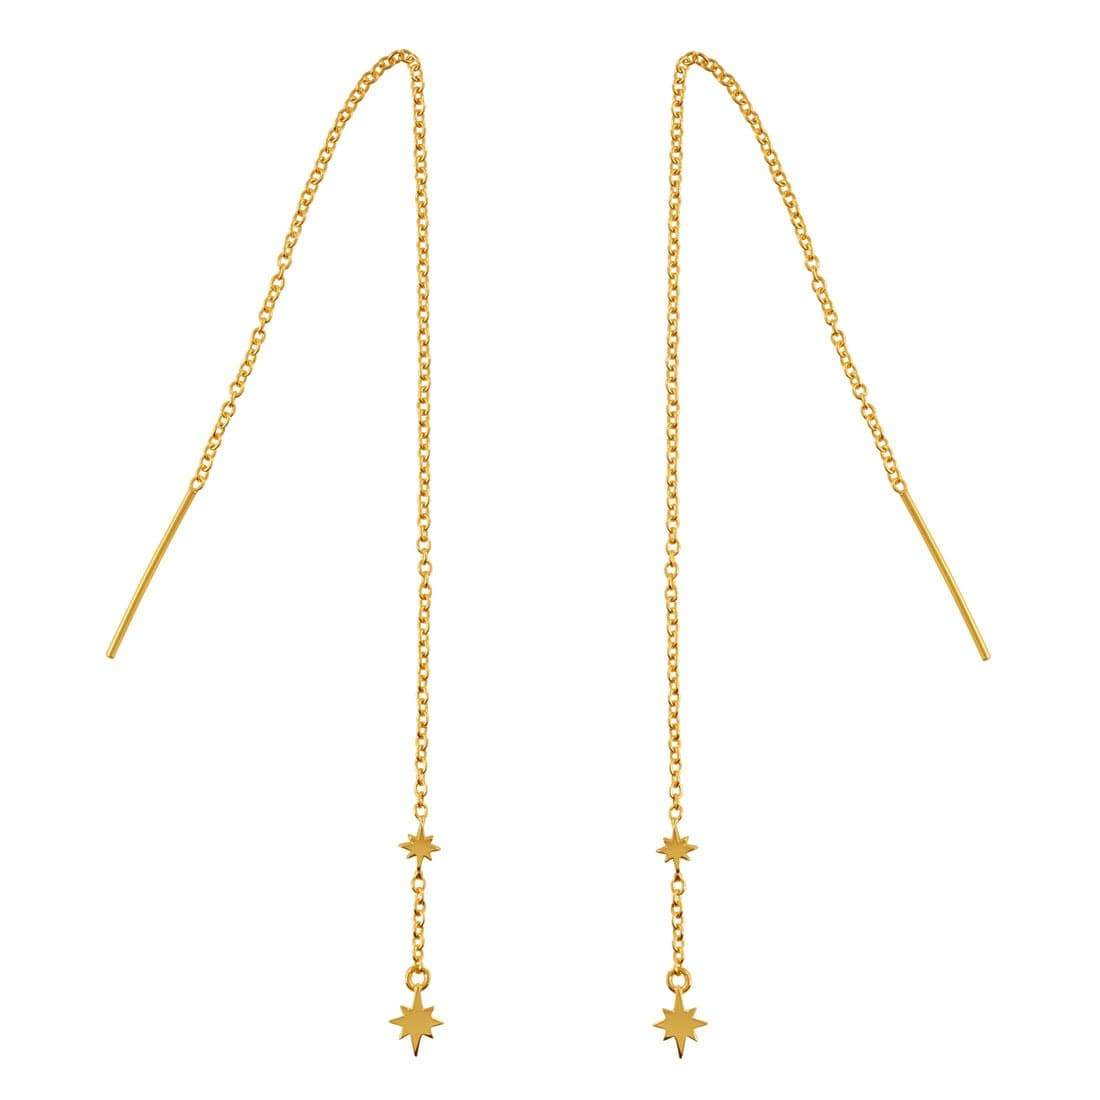 Midsummer Star Earrings Gold Celestial Threaders